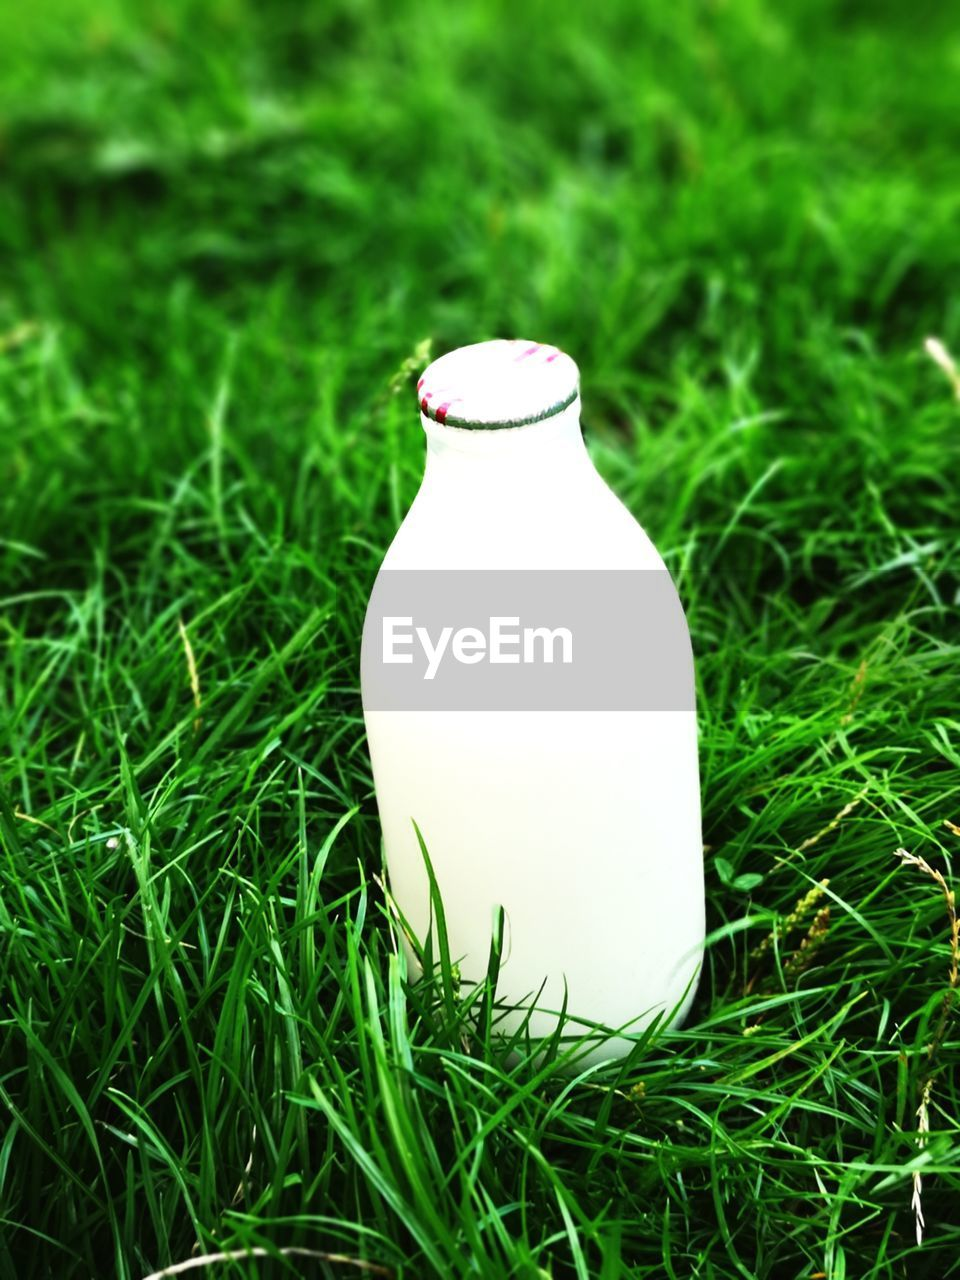 grass, green color, plant, no people, nature, bottle, white color, container, field, focus on foreground, close-up, day, land, food and drink, growth, single object, outdoors, refreshment, food, milk bottle